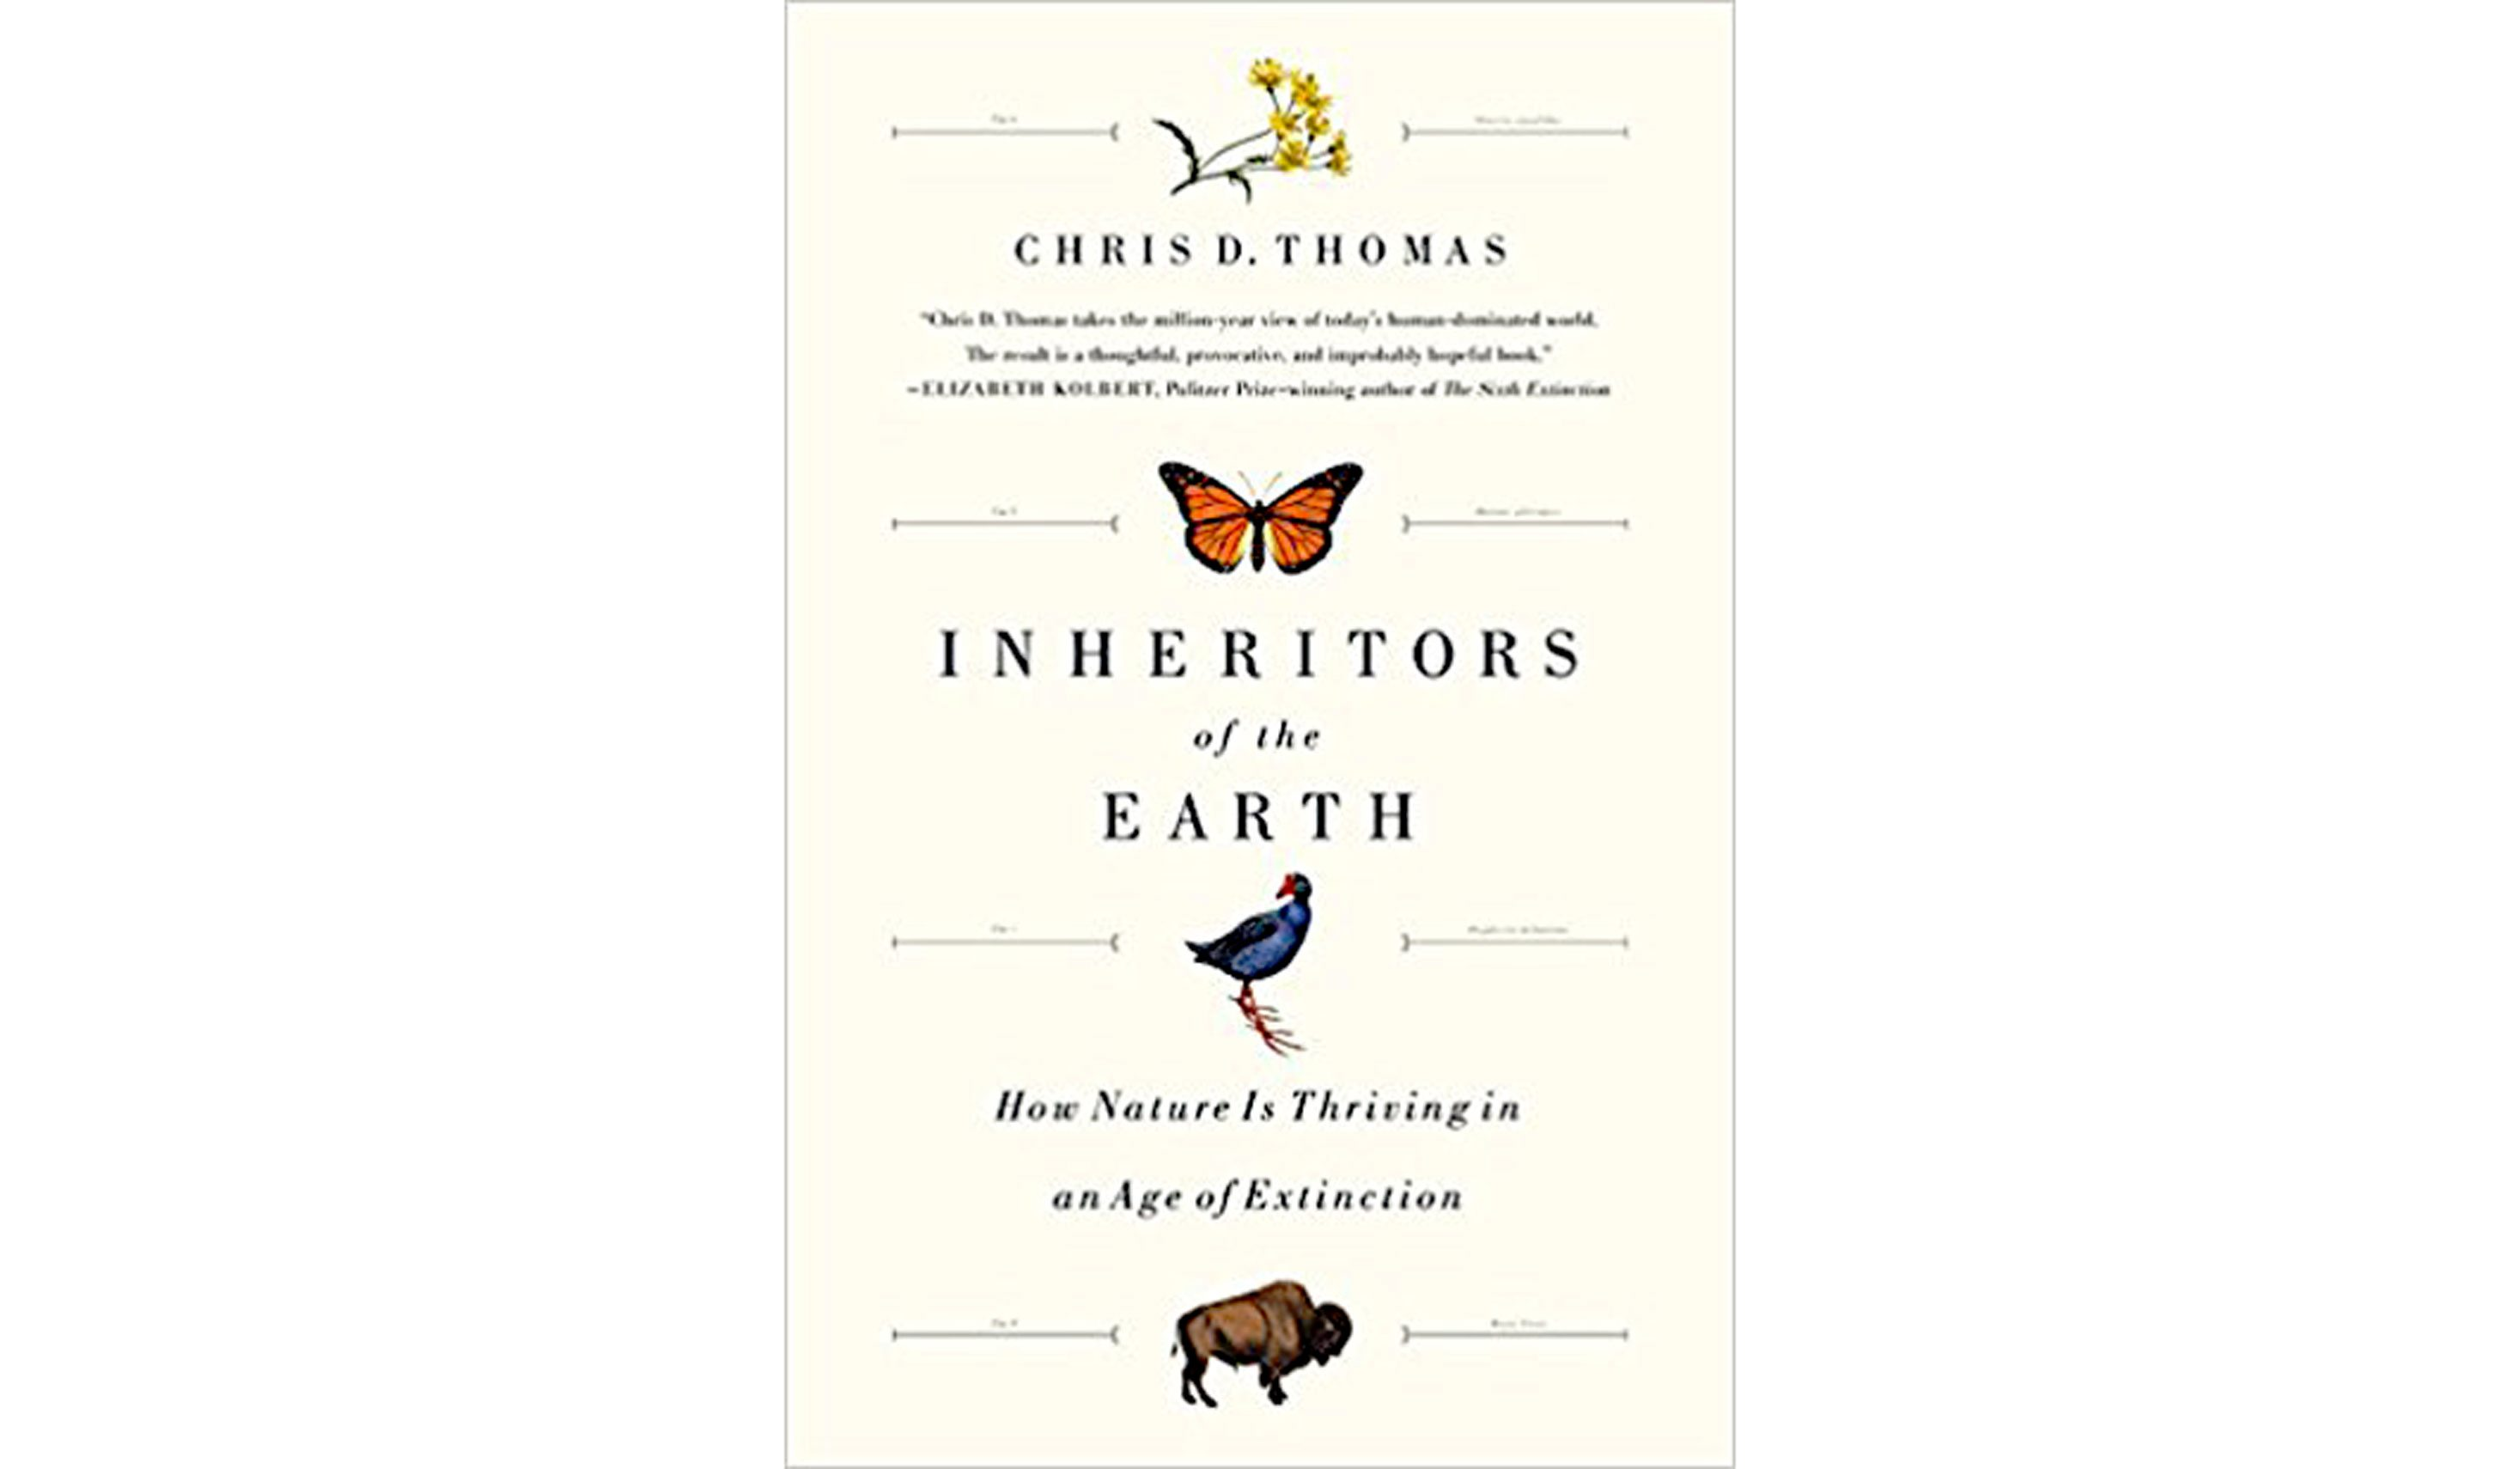 Book review inheritors of the earth by chris d thomas book review inheritors of the earth by chris d thomas washington times malvernweather Images